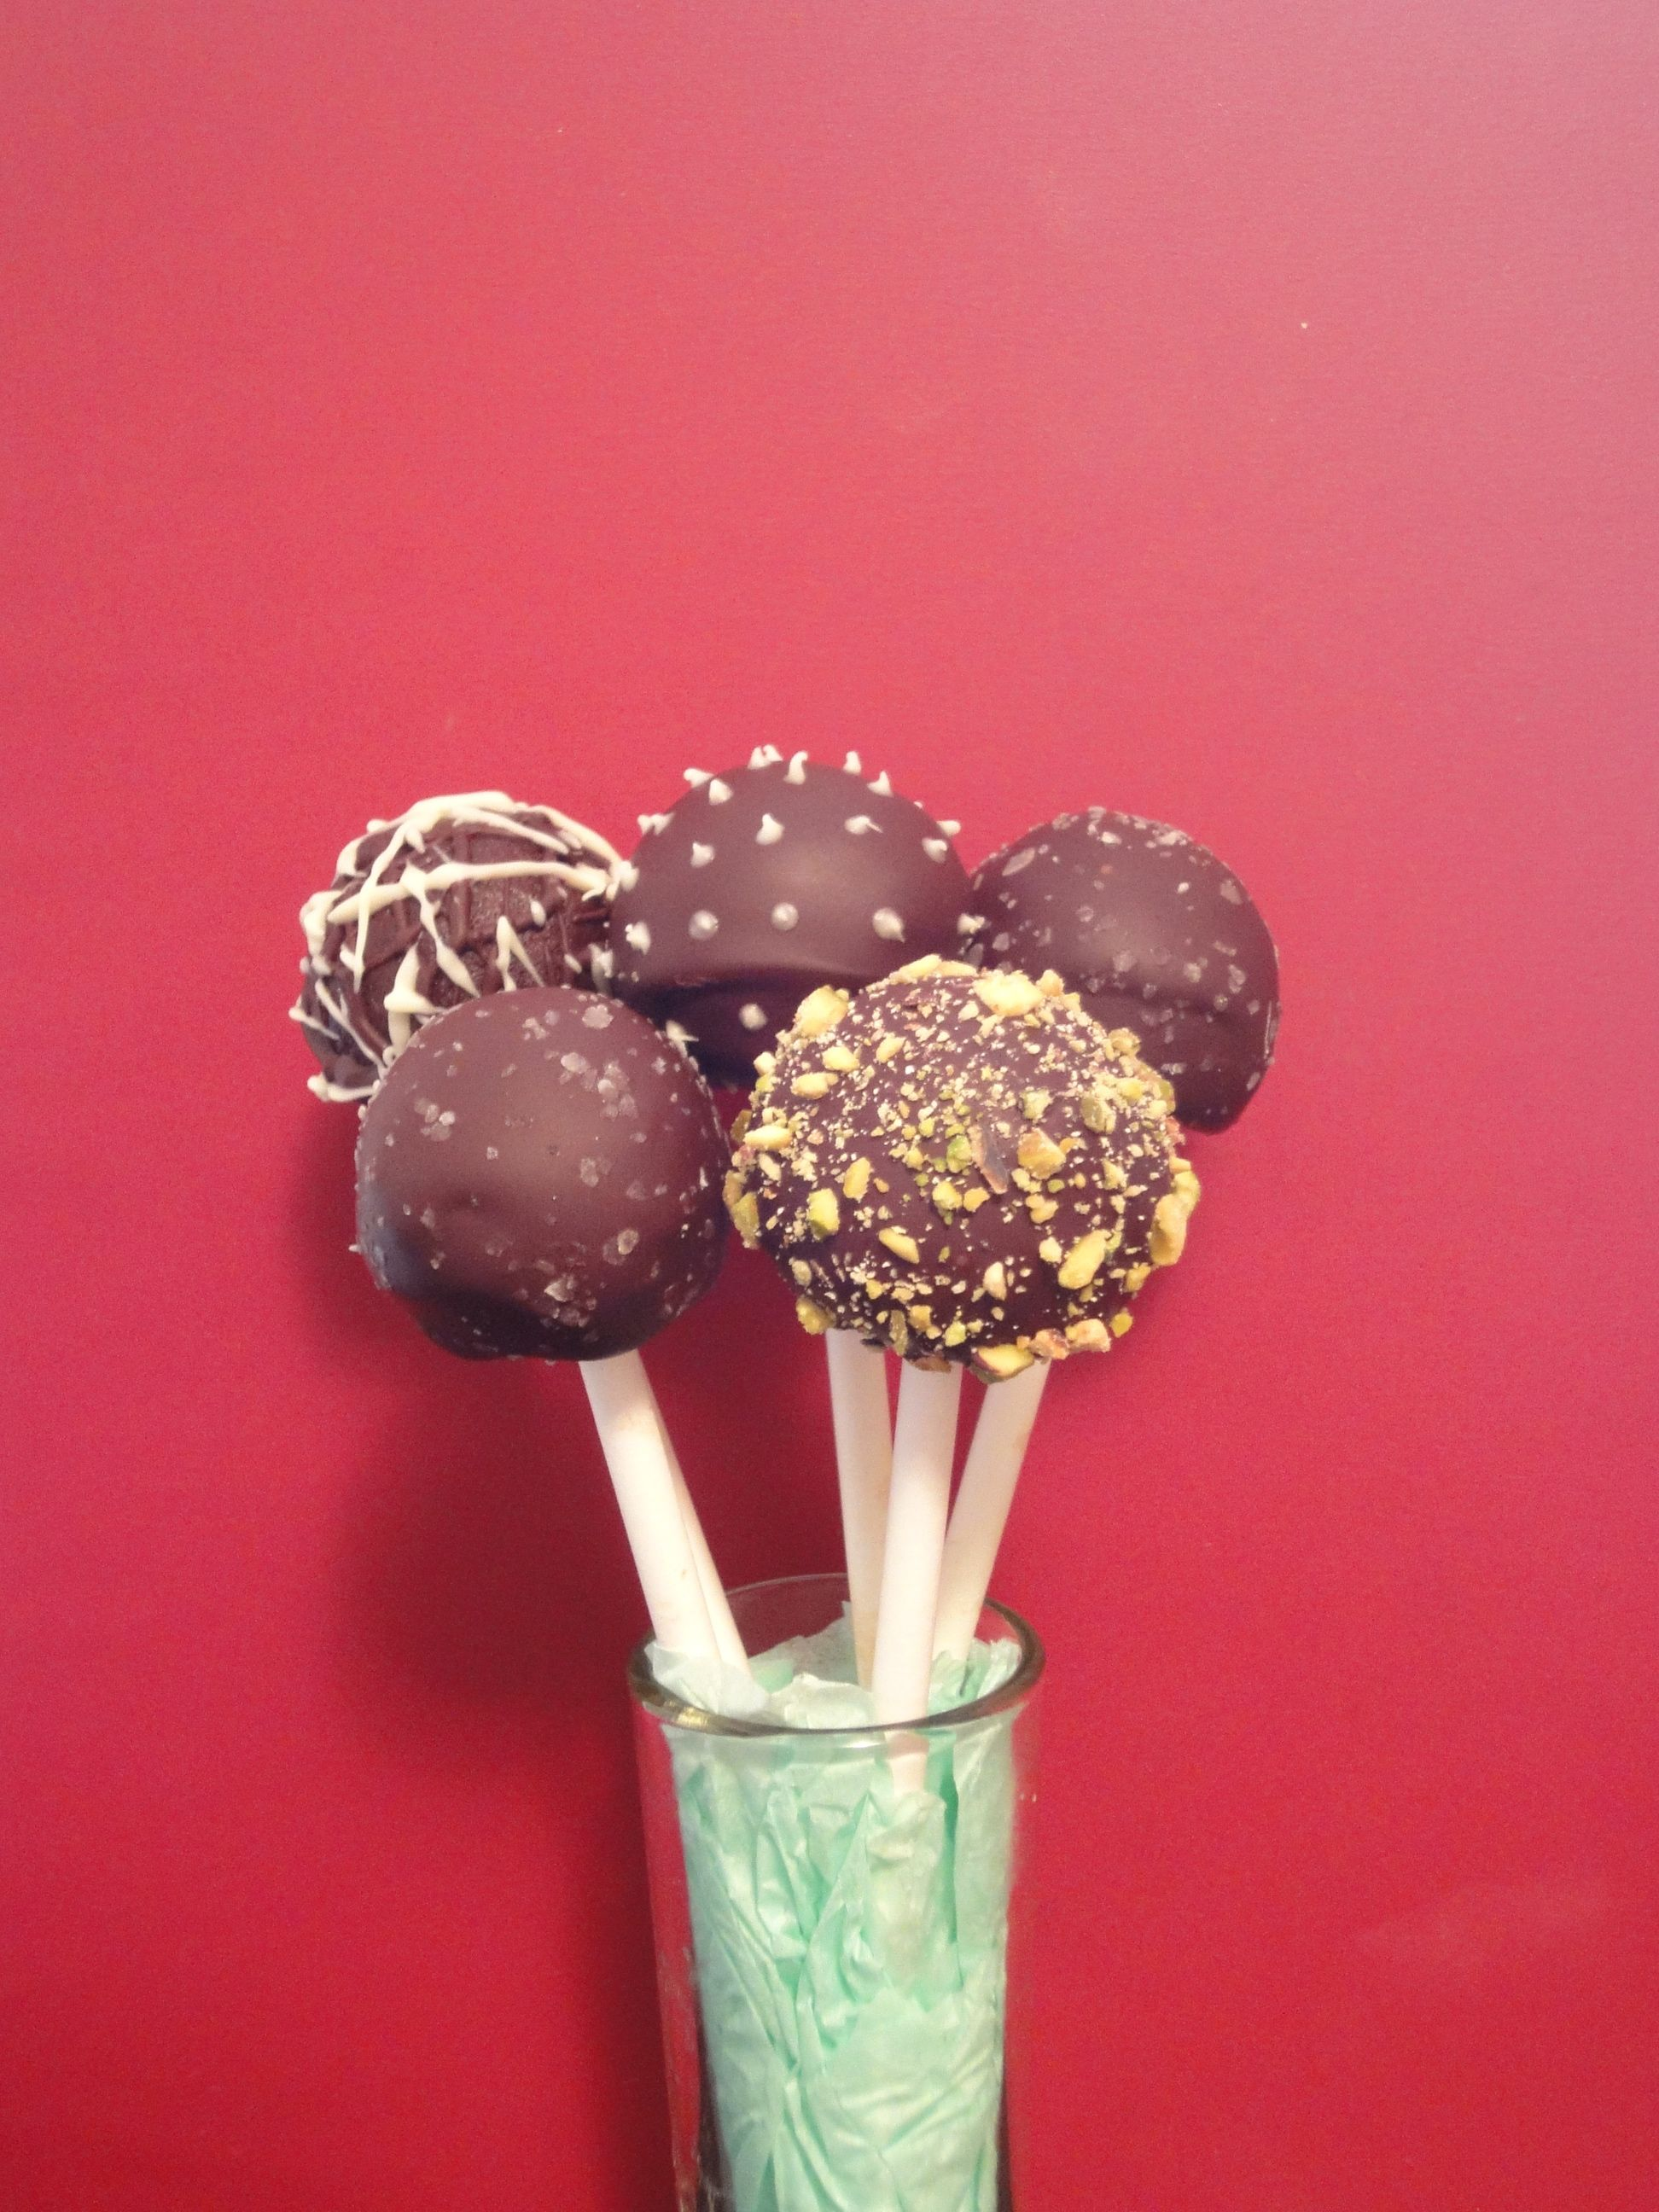 Good for you chocolate cake pops with flax seed http://thebikinibakery.com/